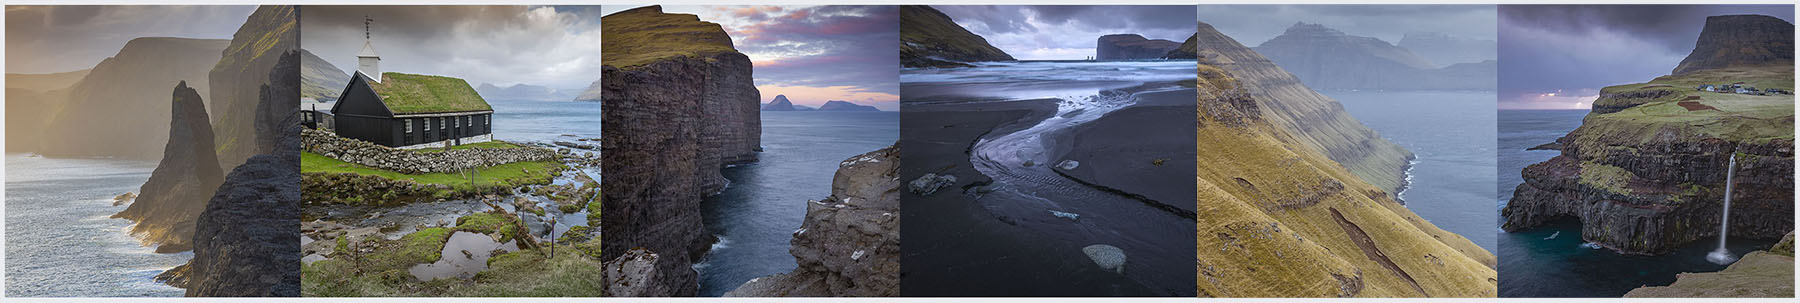 faroe islands workshop